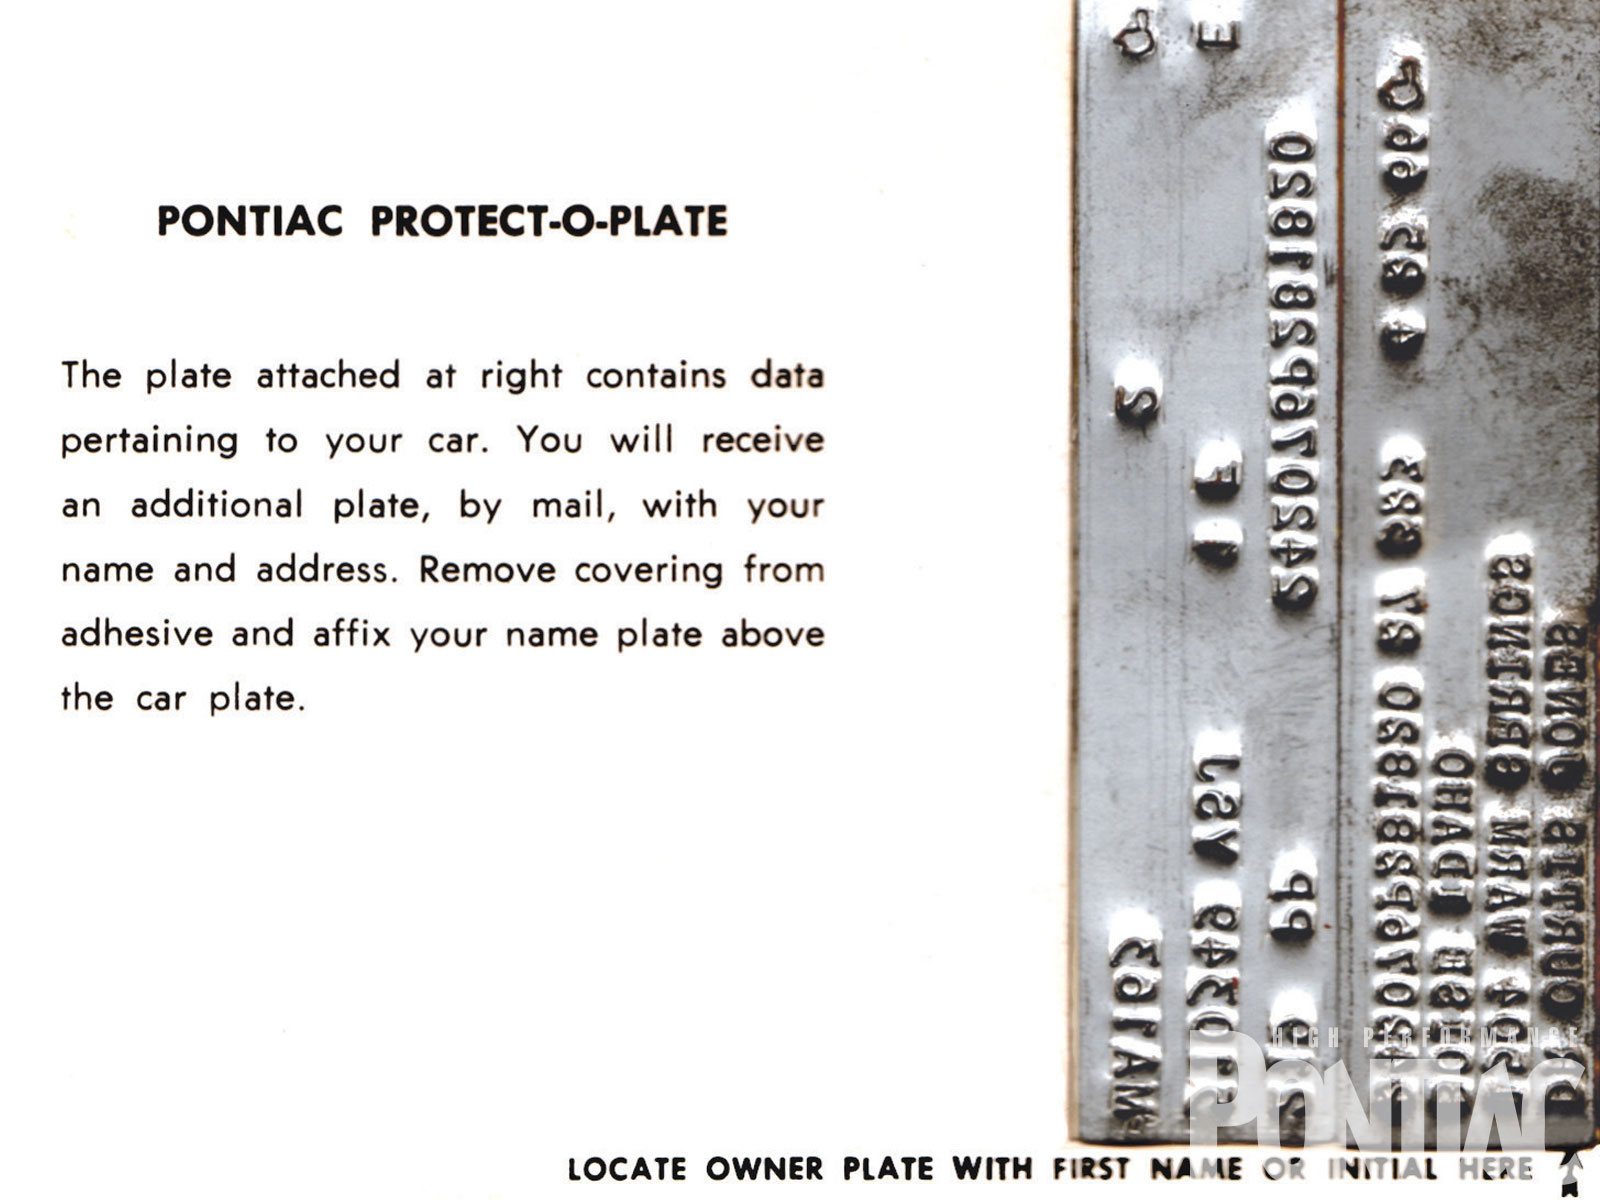 The Protect-O-Plate looked similar to the Ident-O-Plate and served the same purpose of automating customer and vehicle data into the service-warranty process. This one's from '66.